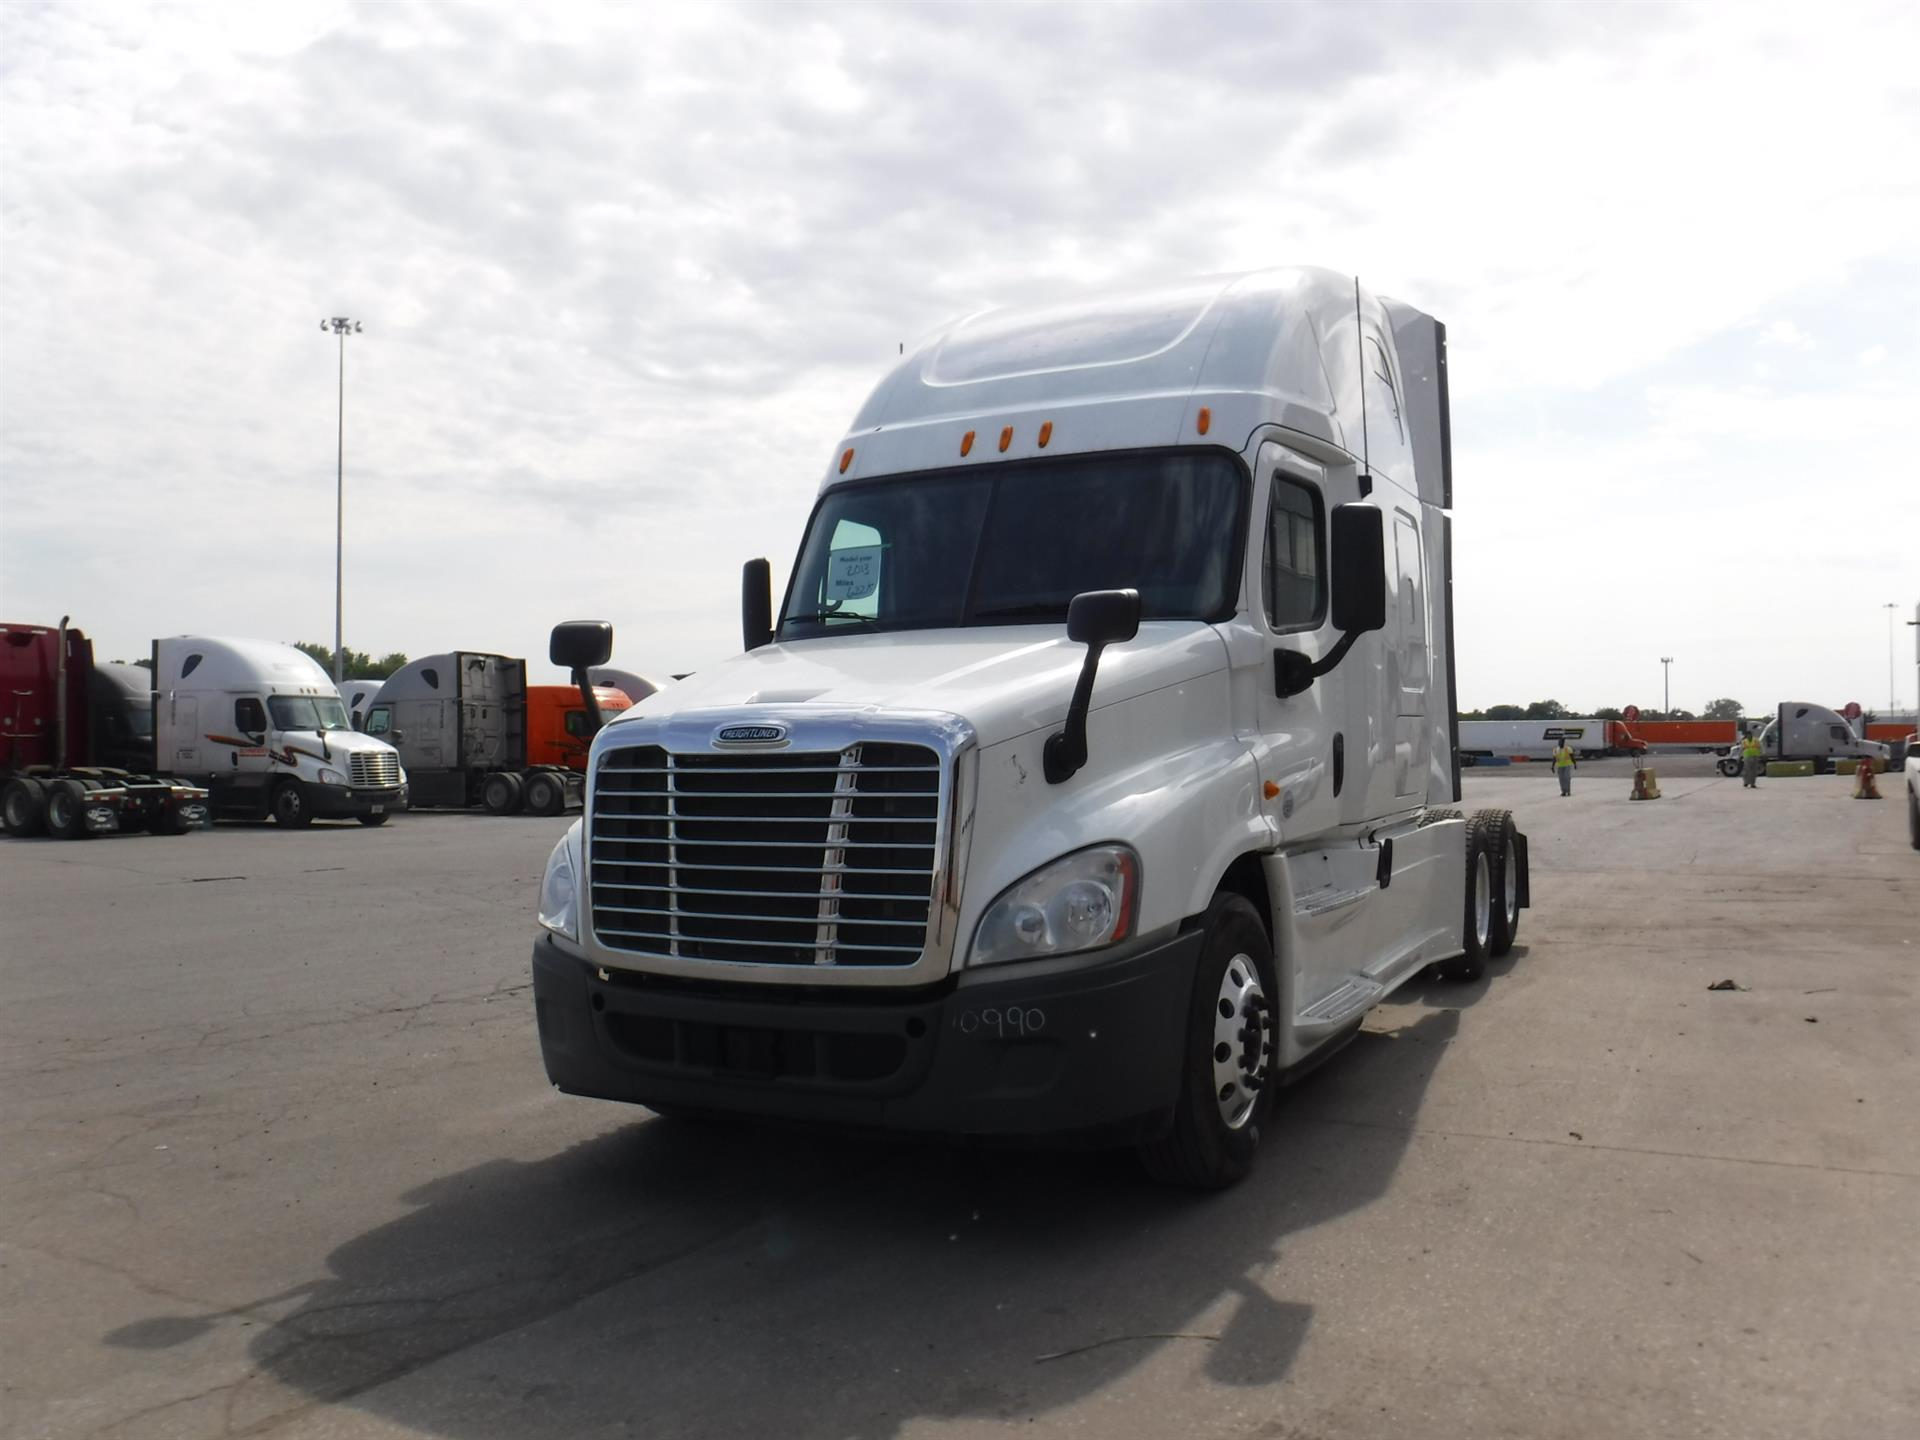 USED 2013 FREIGHTLINER CASCADIA SLEEPER TRUCK #124719